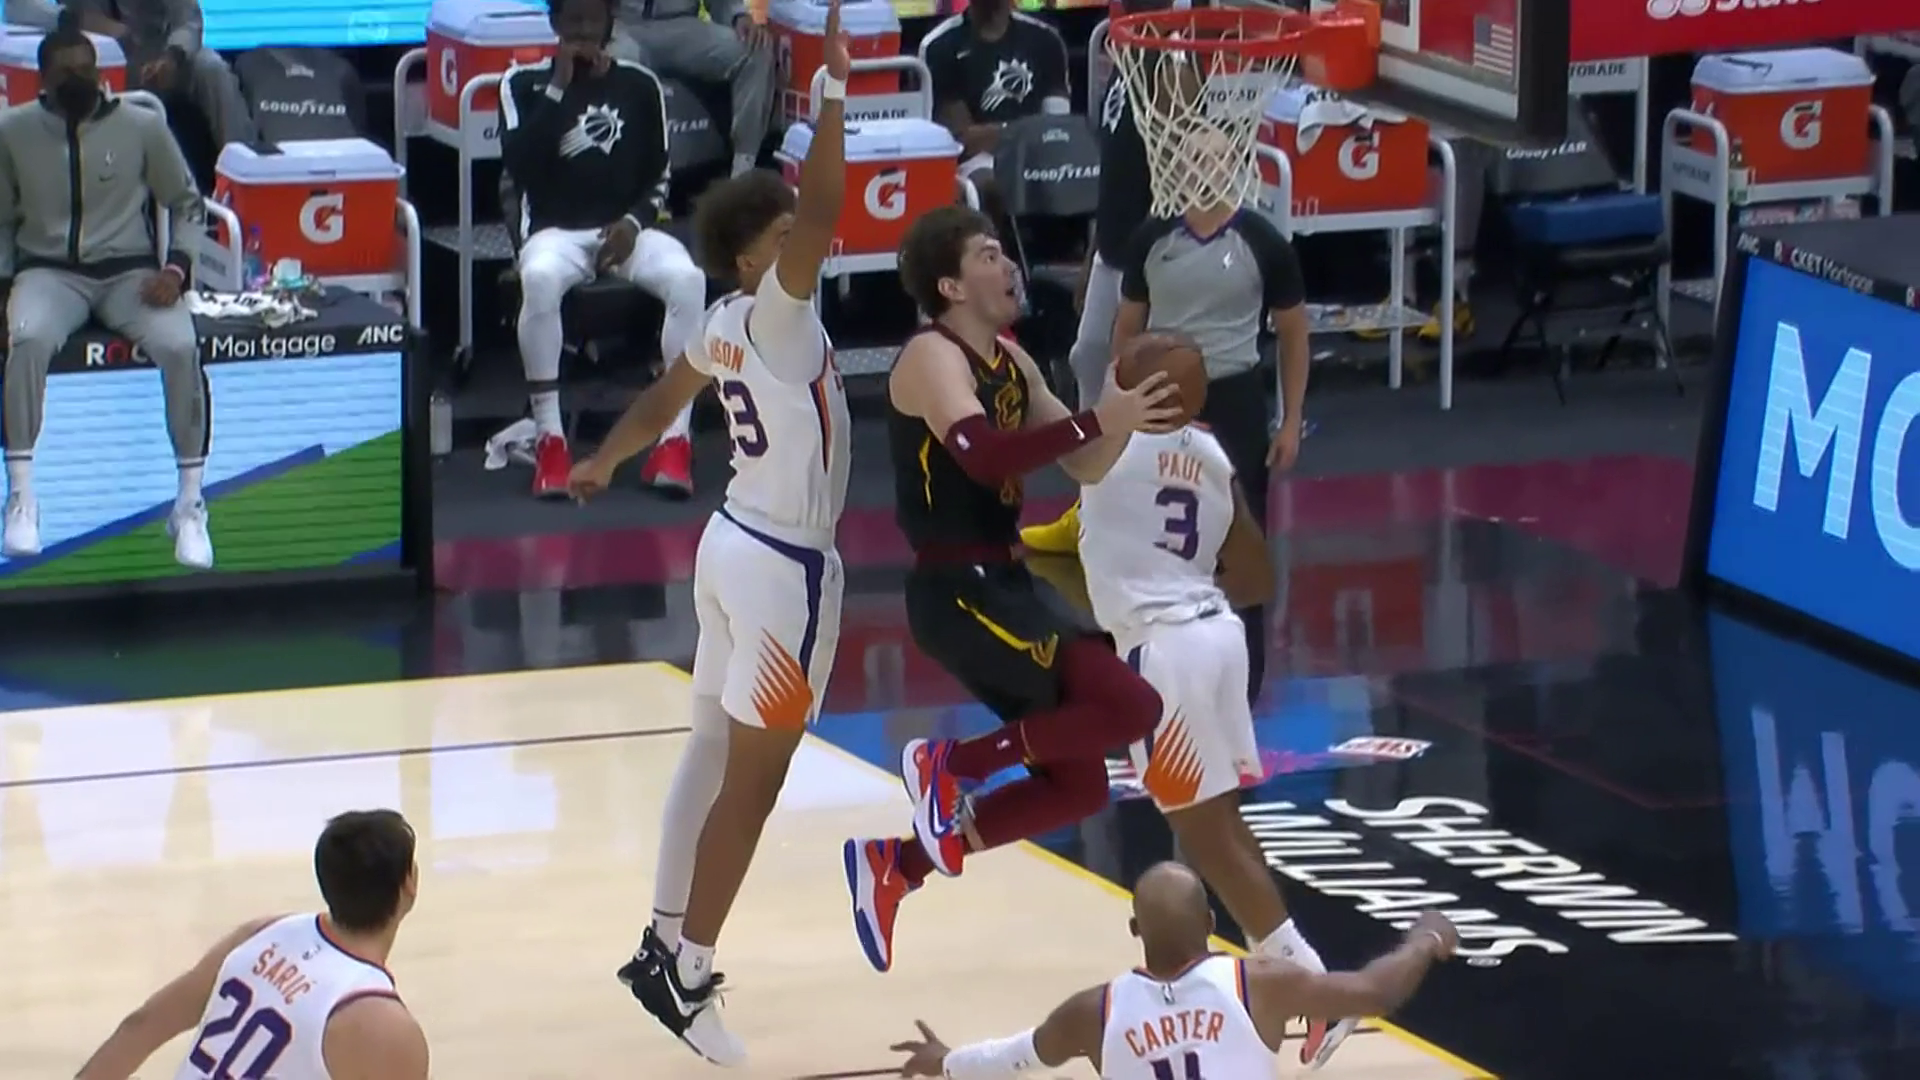 Cedi Hits a Reverse Lay-Up